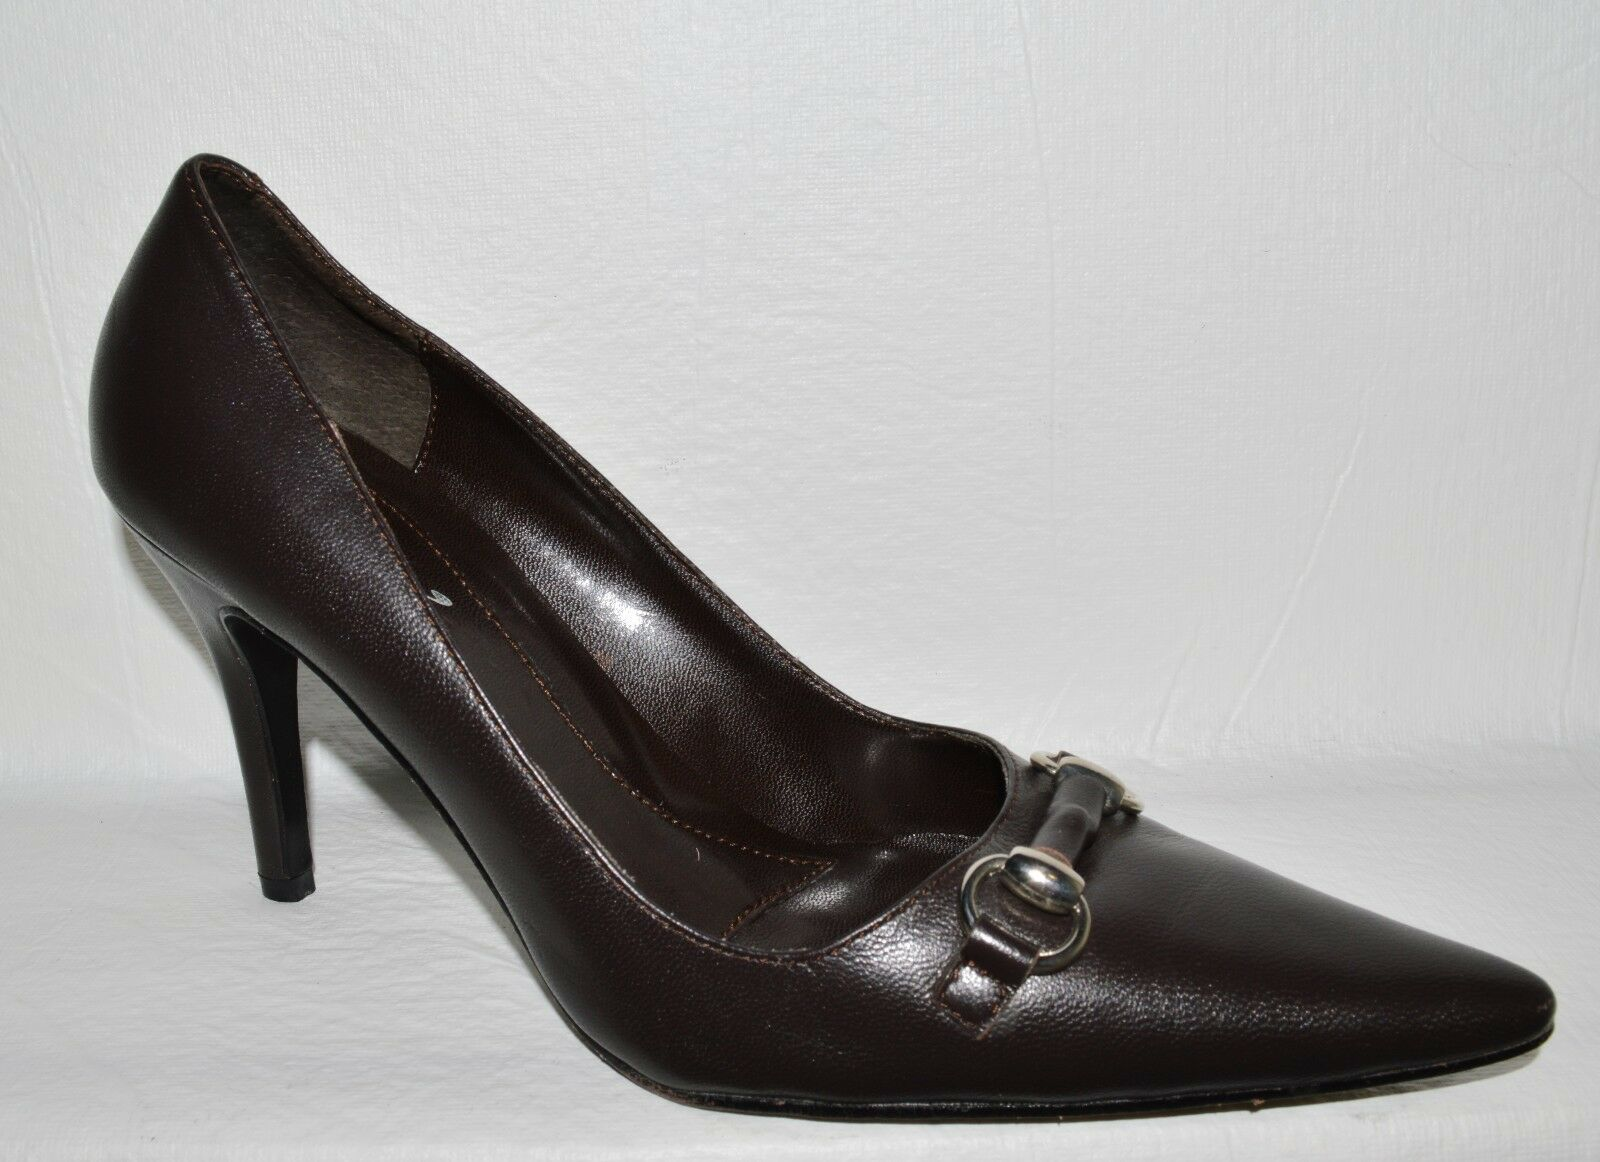 MV MV MV MARTINEZ VALERO SZ 8 M BROWN LEATHER PUMPS HEELS DRESS SHOES 2d84fd